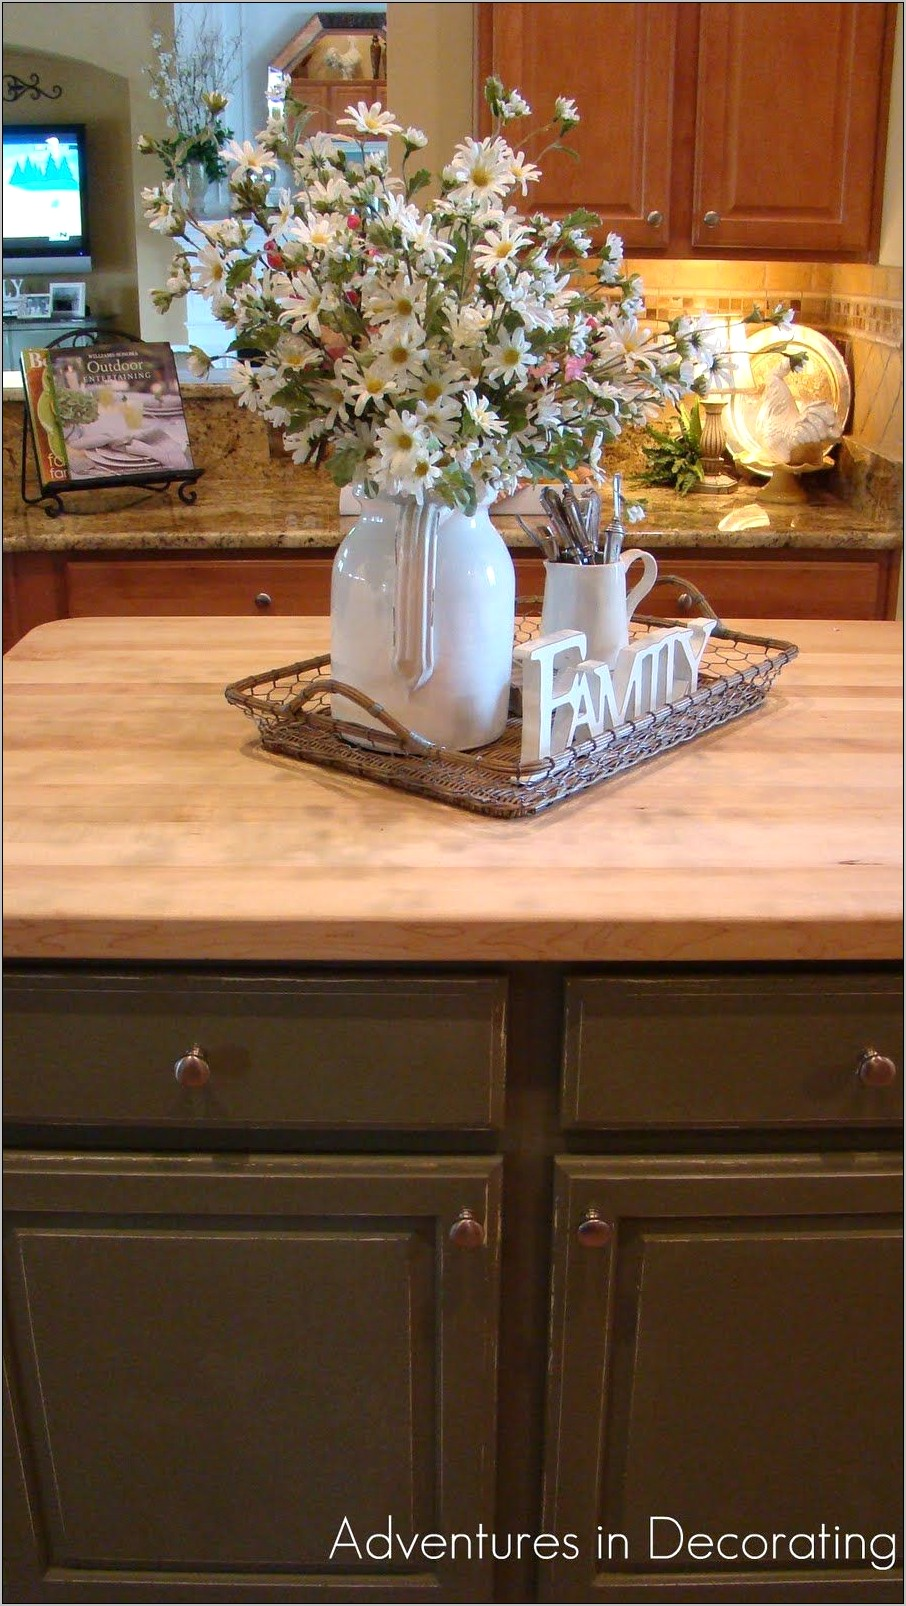 Centerpiece Kitchen Island Decor Ideas